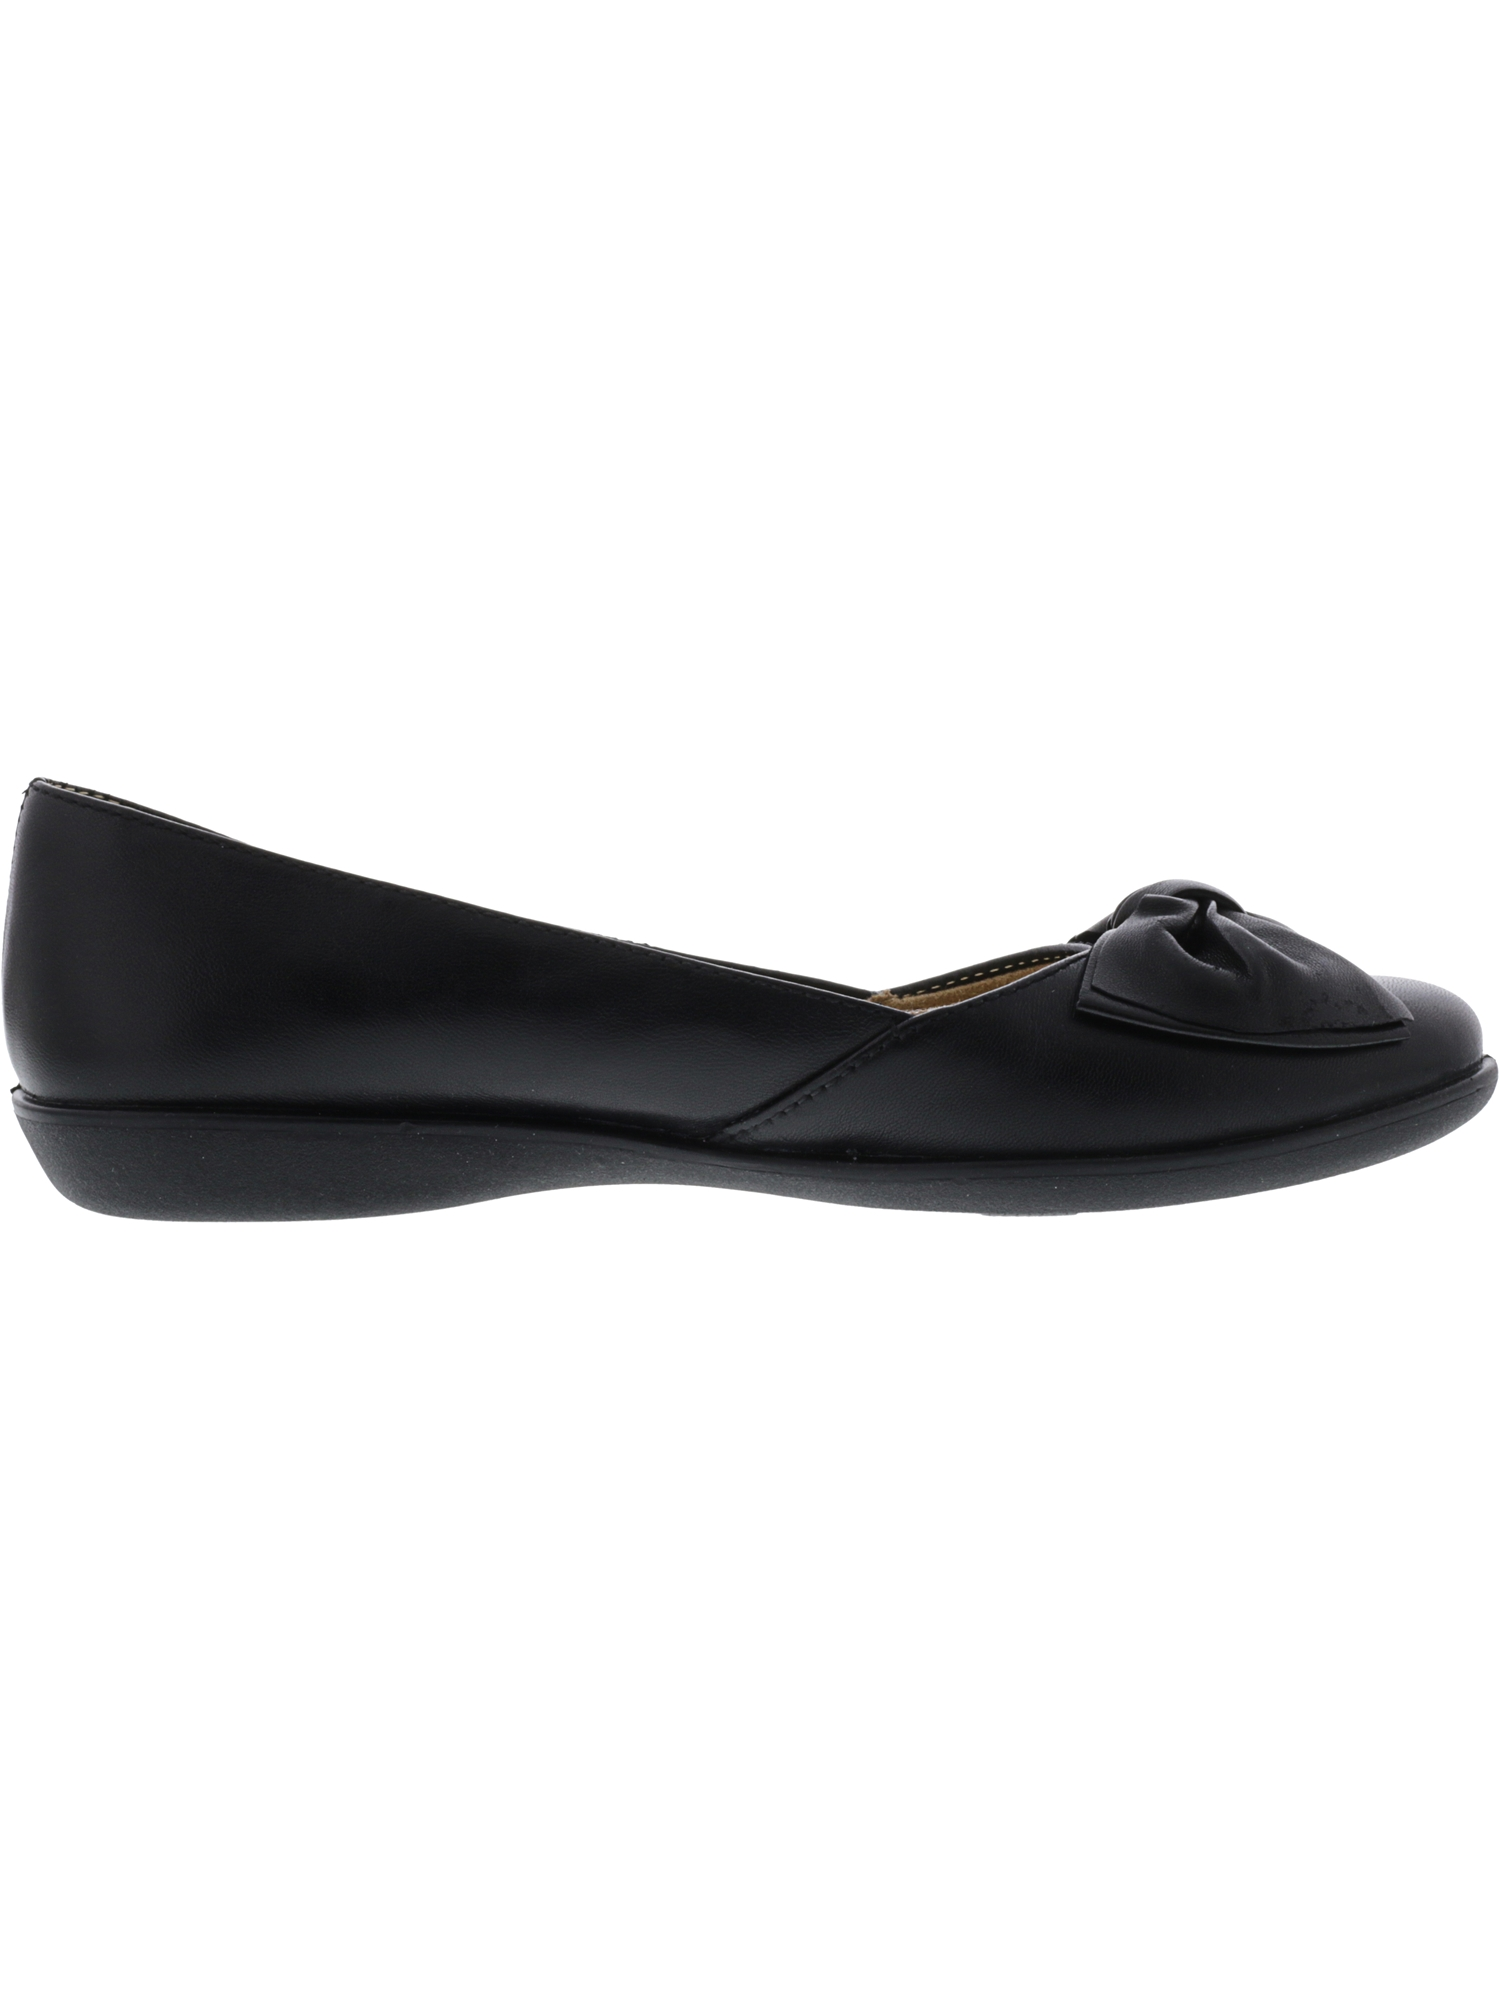 f304f7836 Naturalizer - Naturalizer Women's Flora Leather Black Flat Shoe - 9M -  Walmart.com